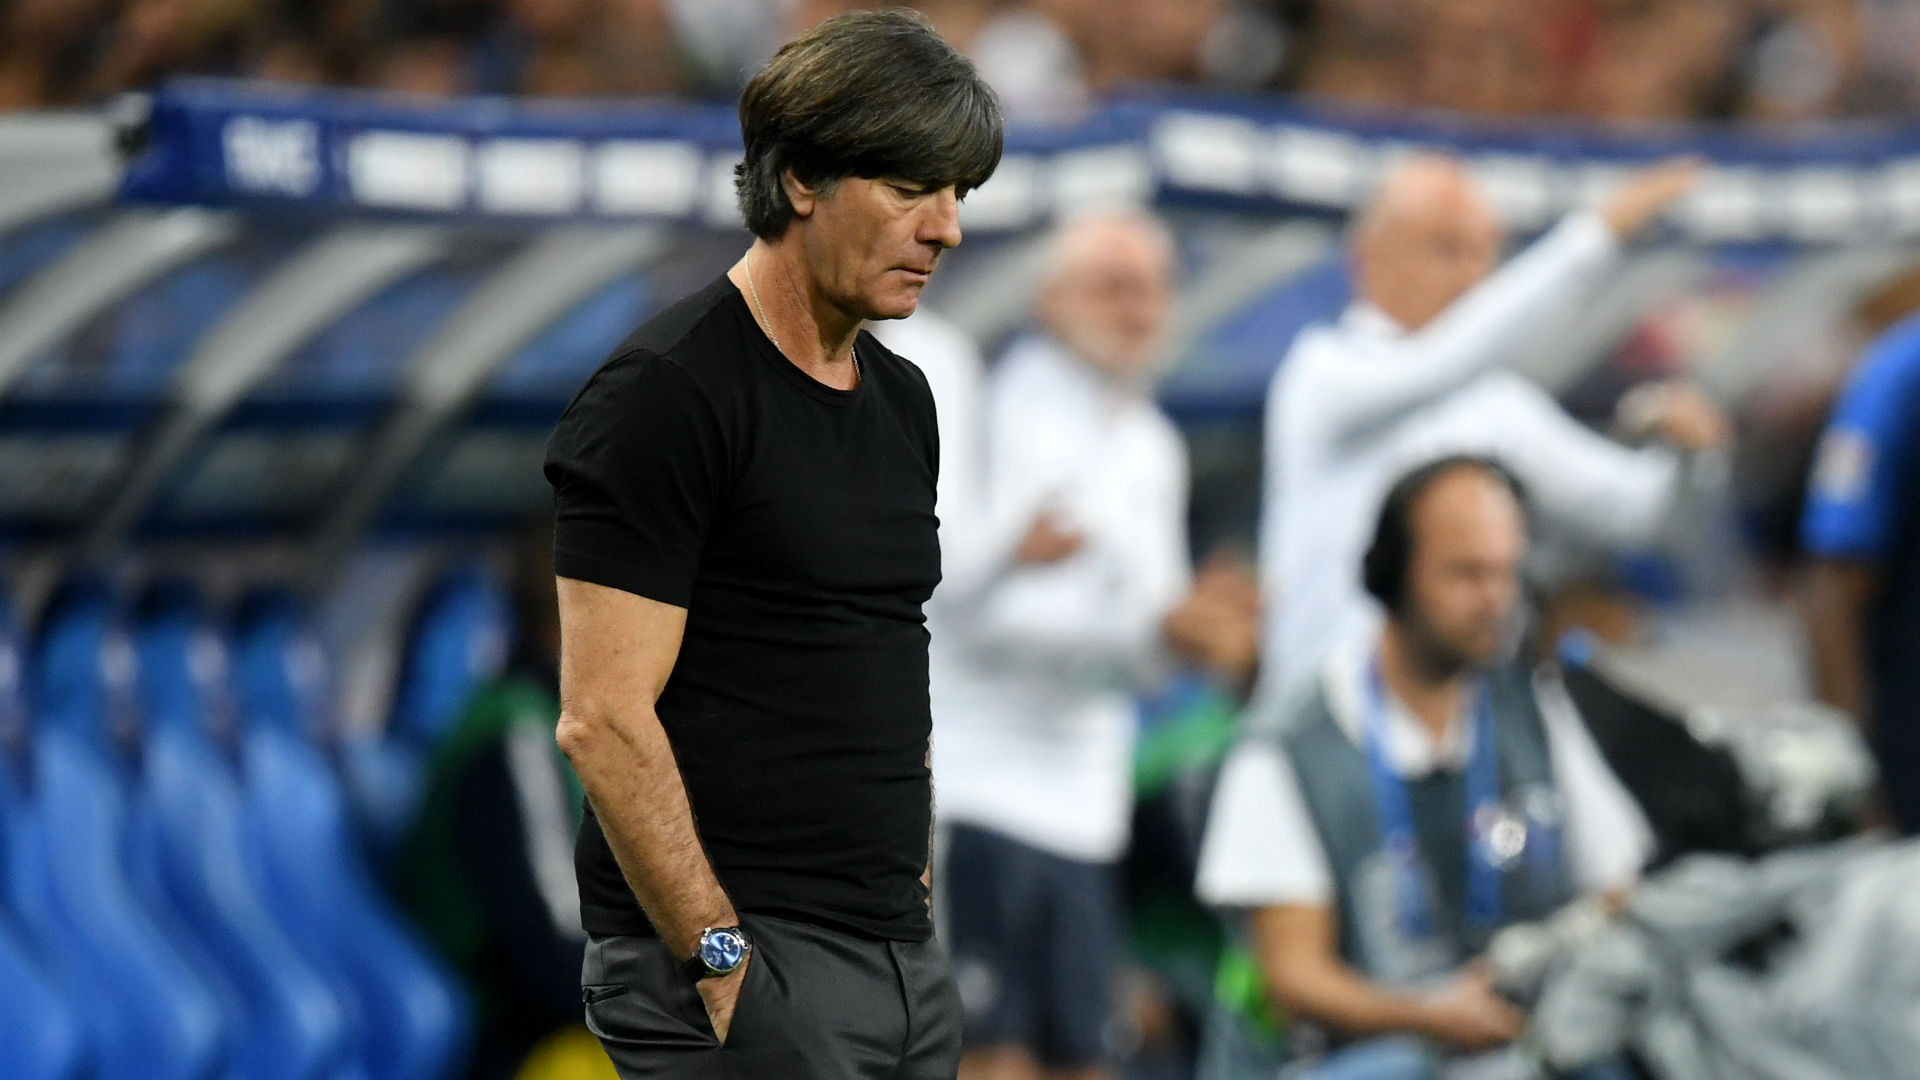 France v Germany: Joachim Low sets unwanted record as pressure mounts